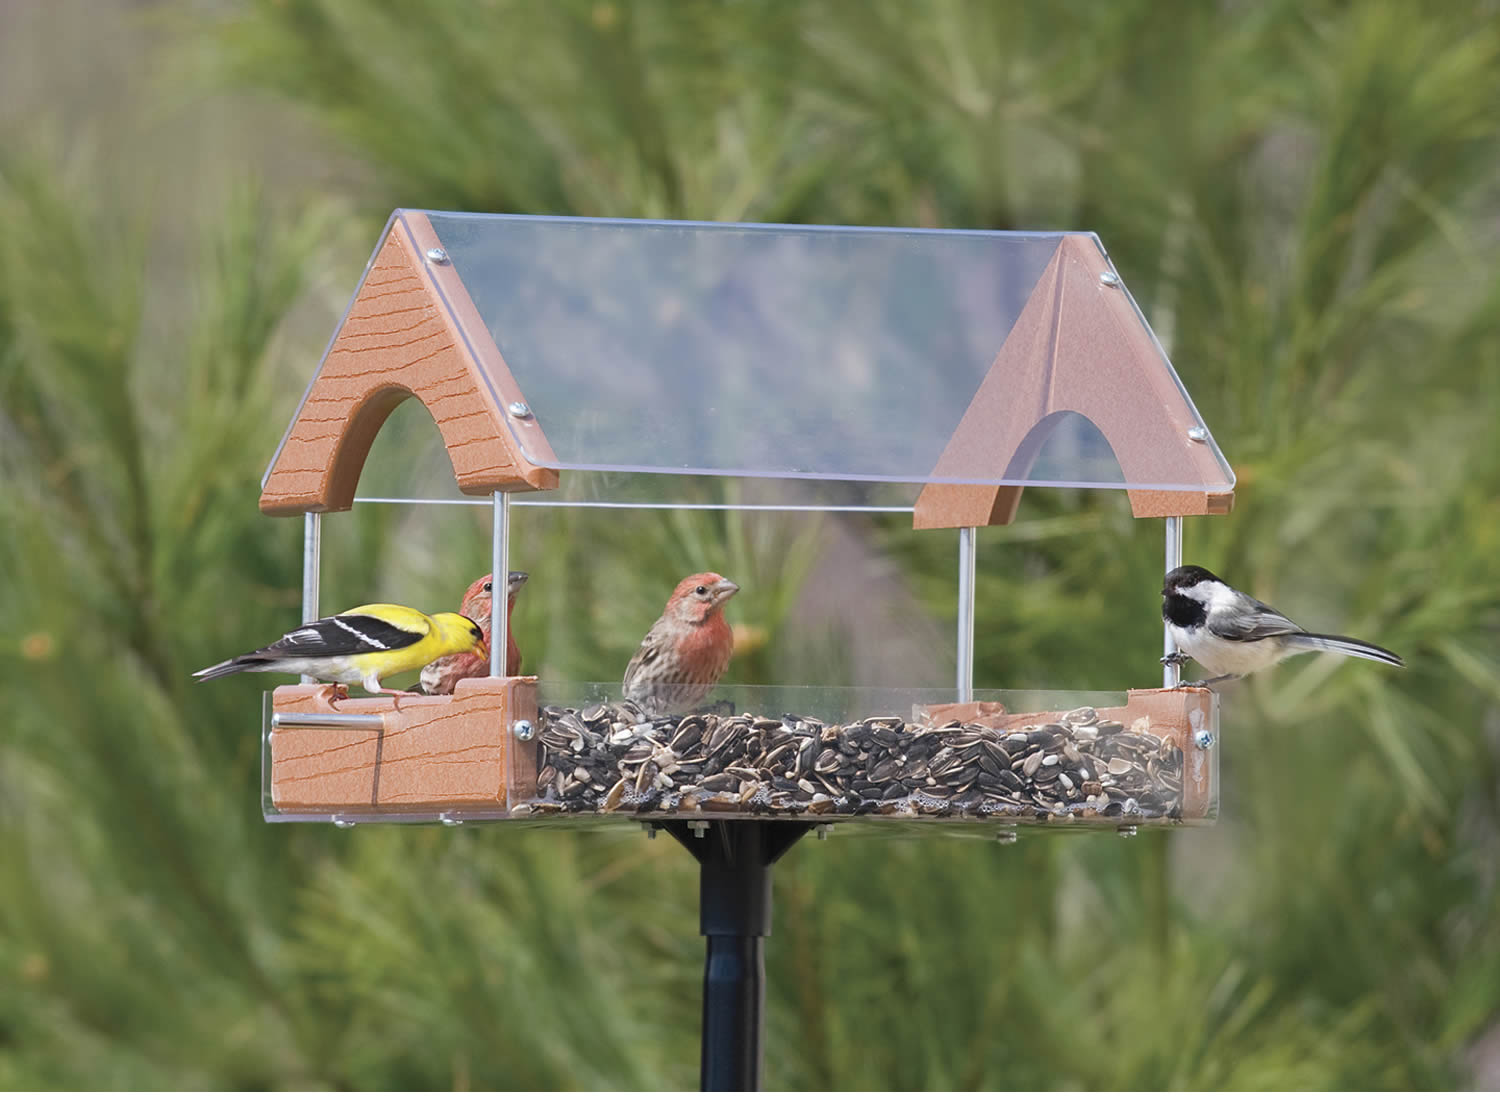 mounted choice feeder bird pole mealworm house birds